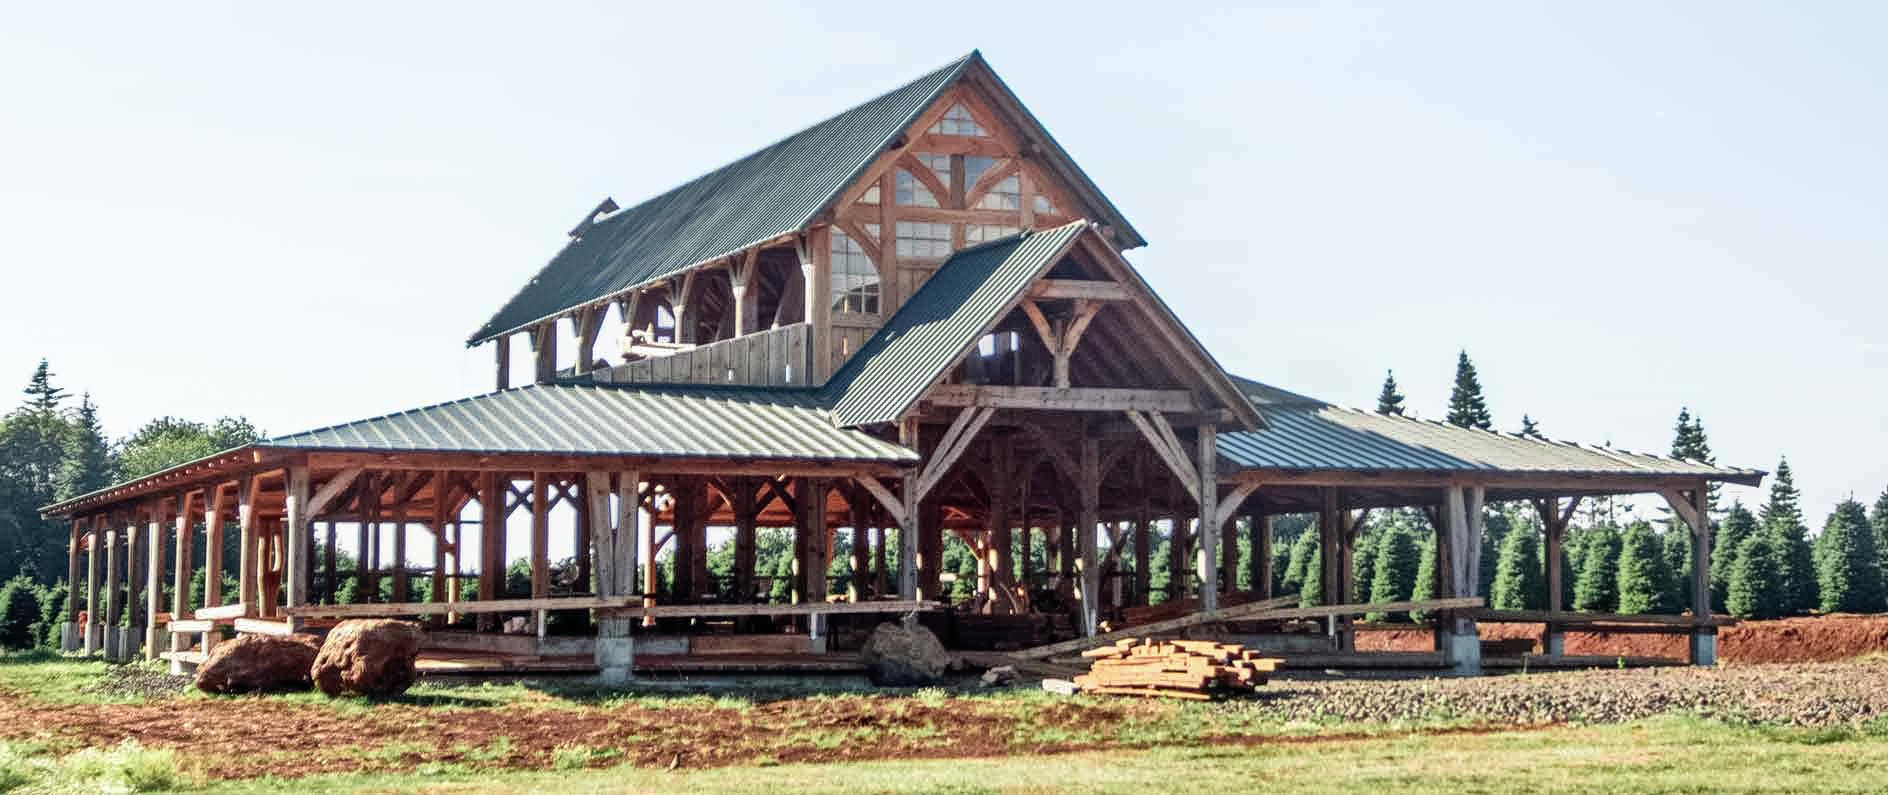 Oregon timber frame barn 2014 the shelter blog for Timber frame house kits for sale